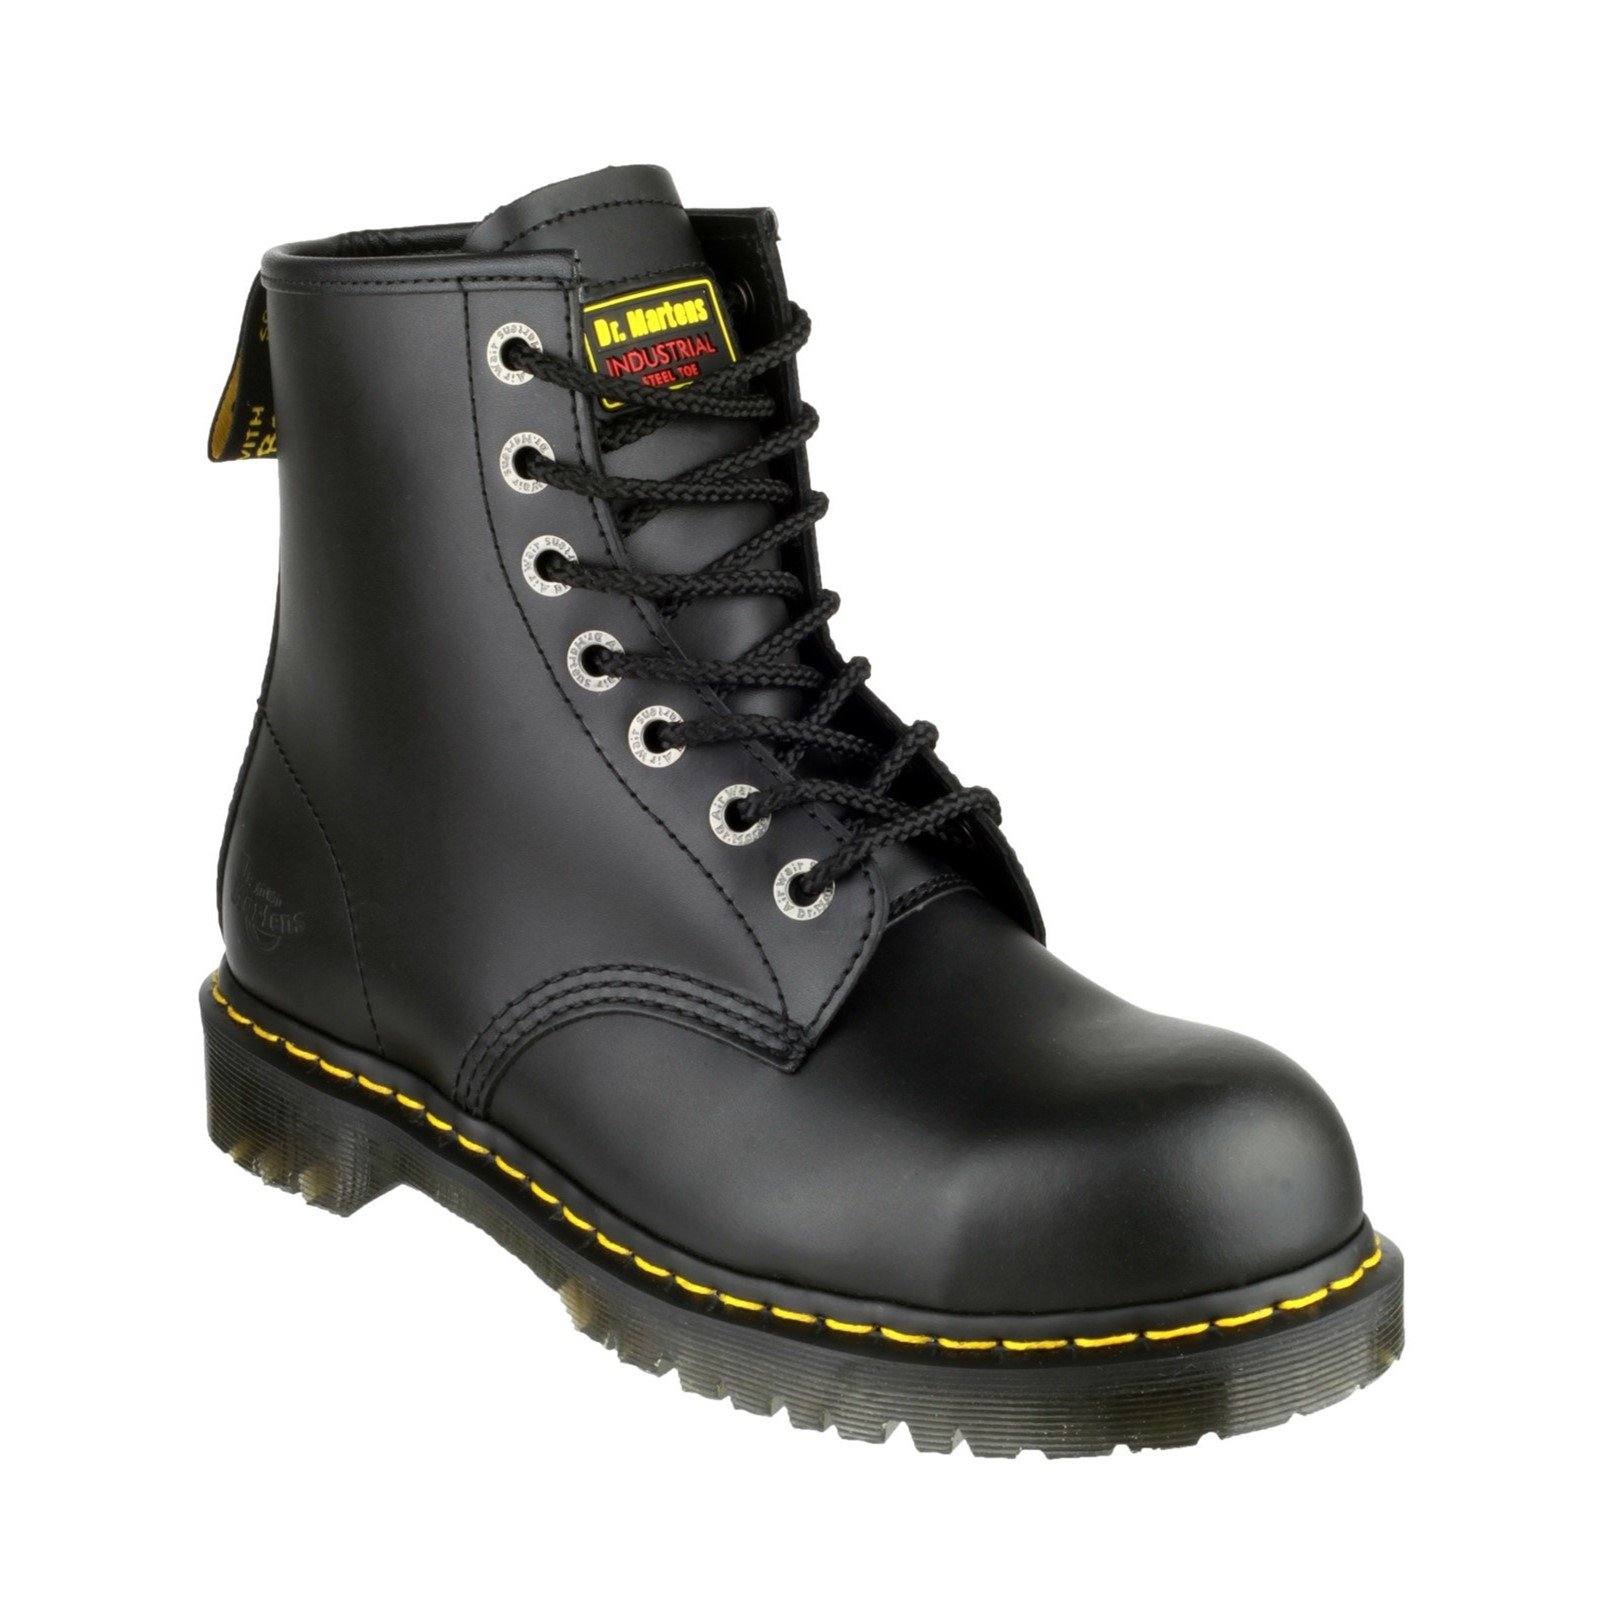 Dr Martens Unisex Icon Lace up Safety Boot Black 19498 - Black 11